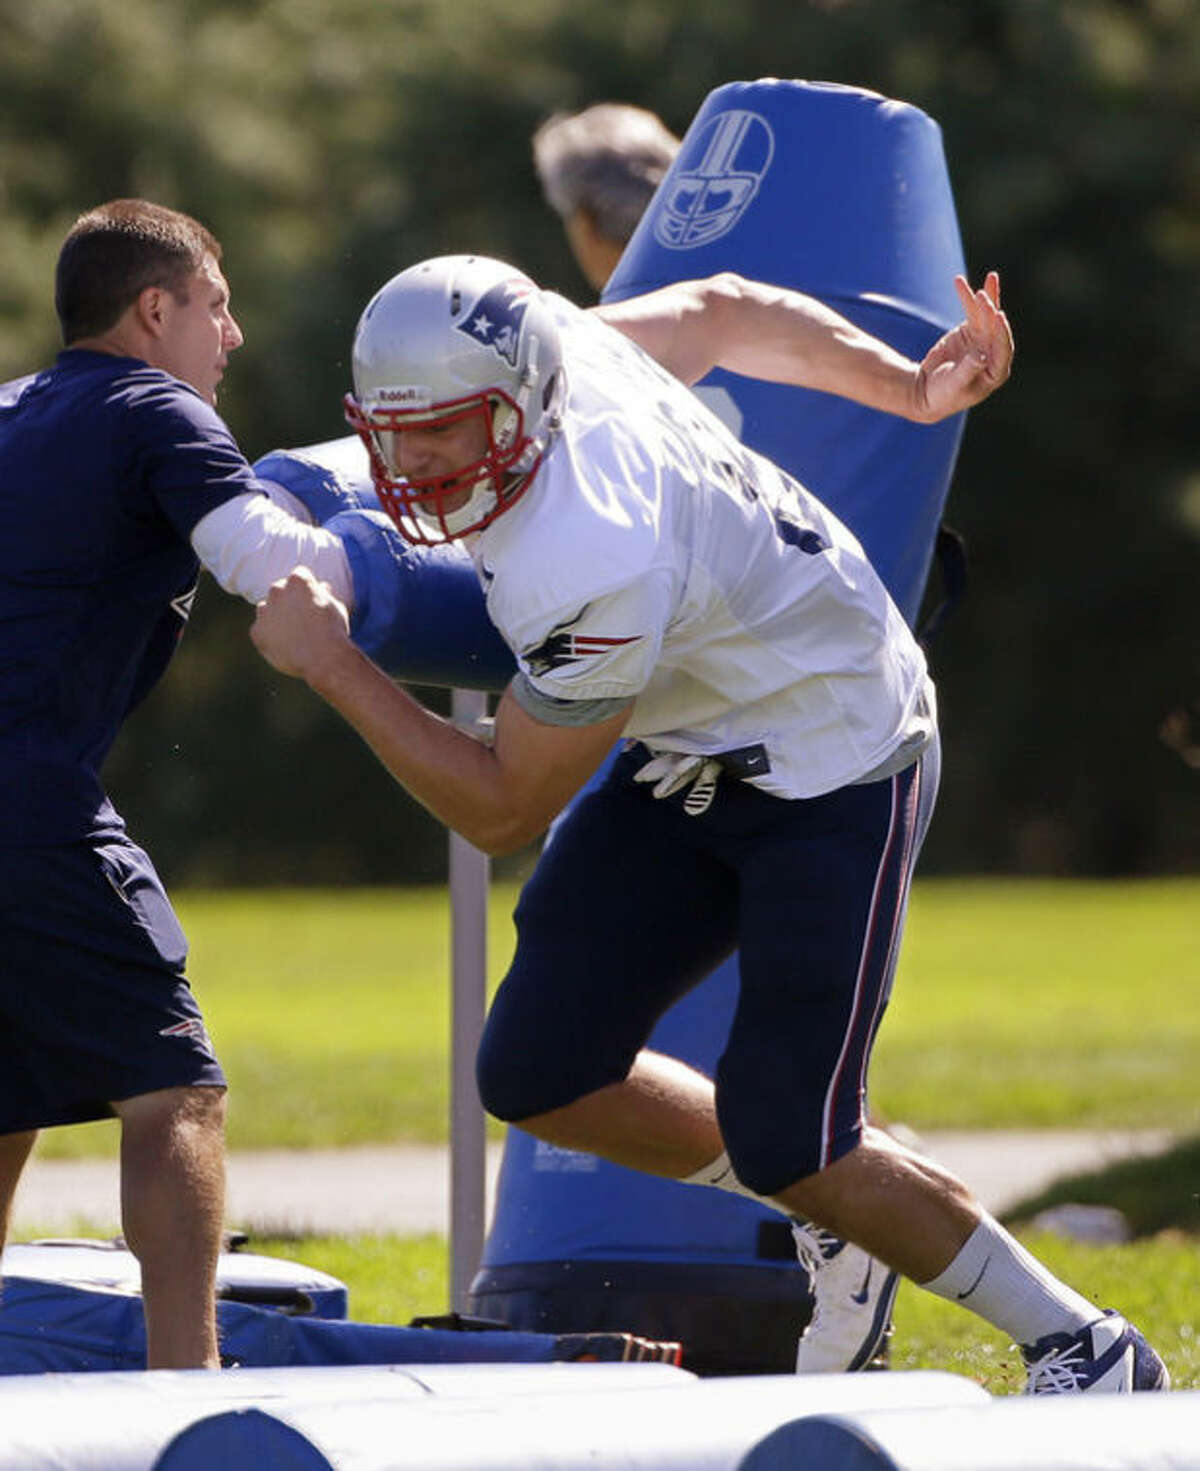 New England Patriots tight end Rob Gronkowski (87) pushes off a block during practice at the NFL football team's facility in Foxborough, Mass., Wednesday Sept. 4, 2013. The Patriots open their regular season against the Buffalo Bills on Sunday. (AP Photo/Stephan Savoia)